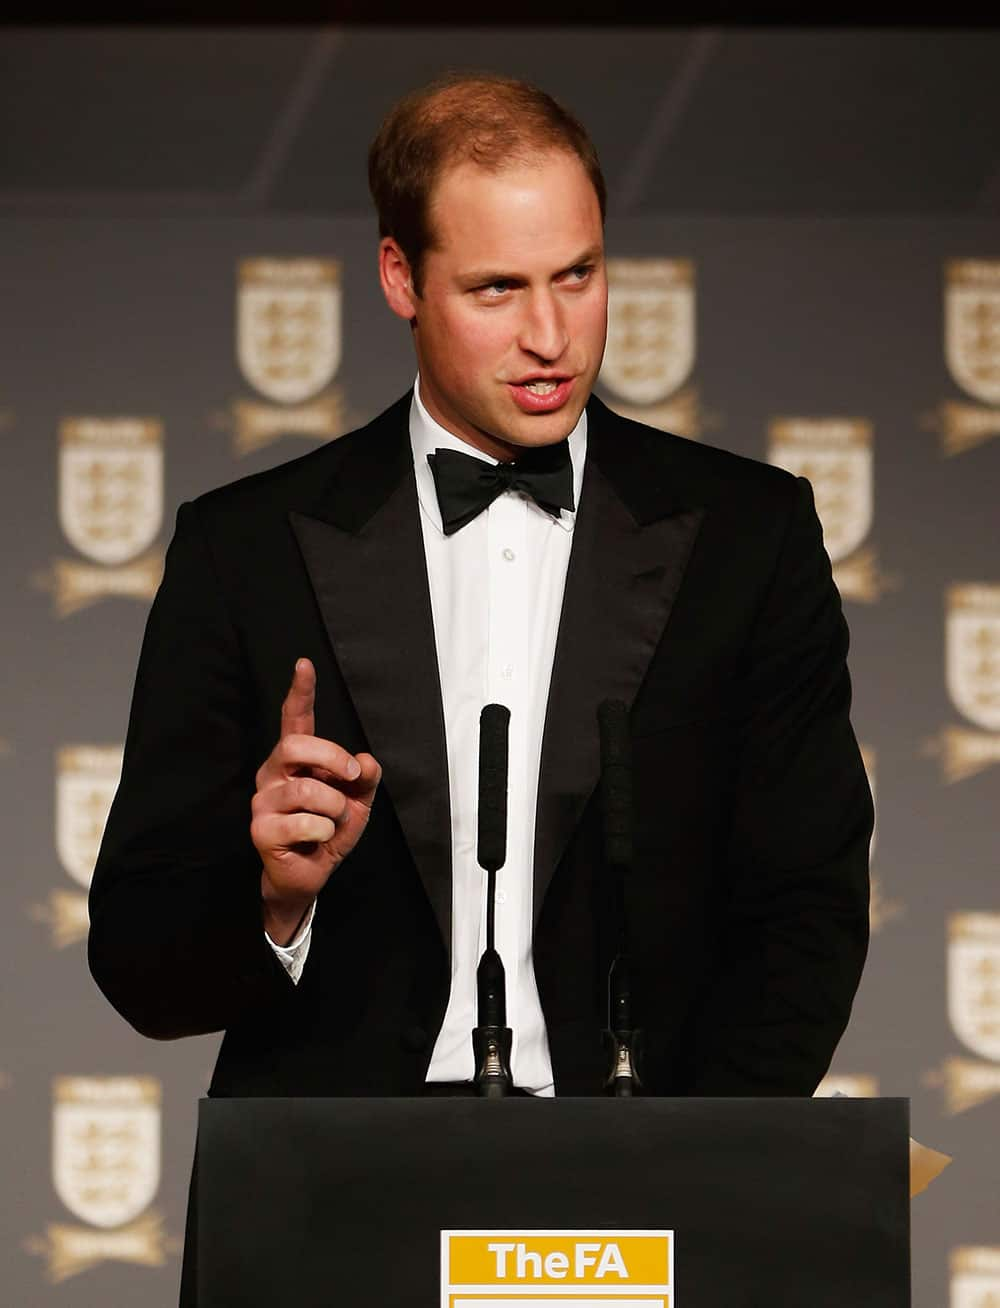 Britain`s Prince William speaks during The Football Association`s 150th Anniversary Gala Dinner in central London. The Football Association was founded 150 years ago on October 26, 1863.